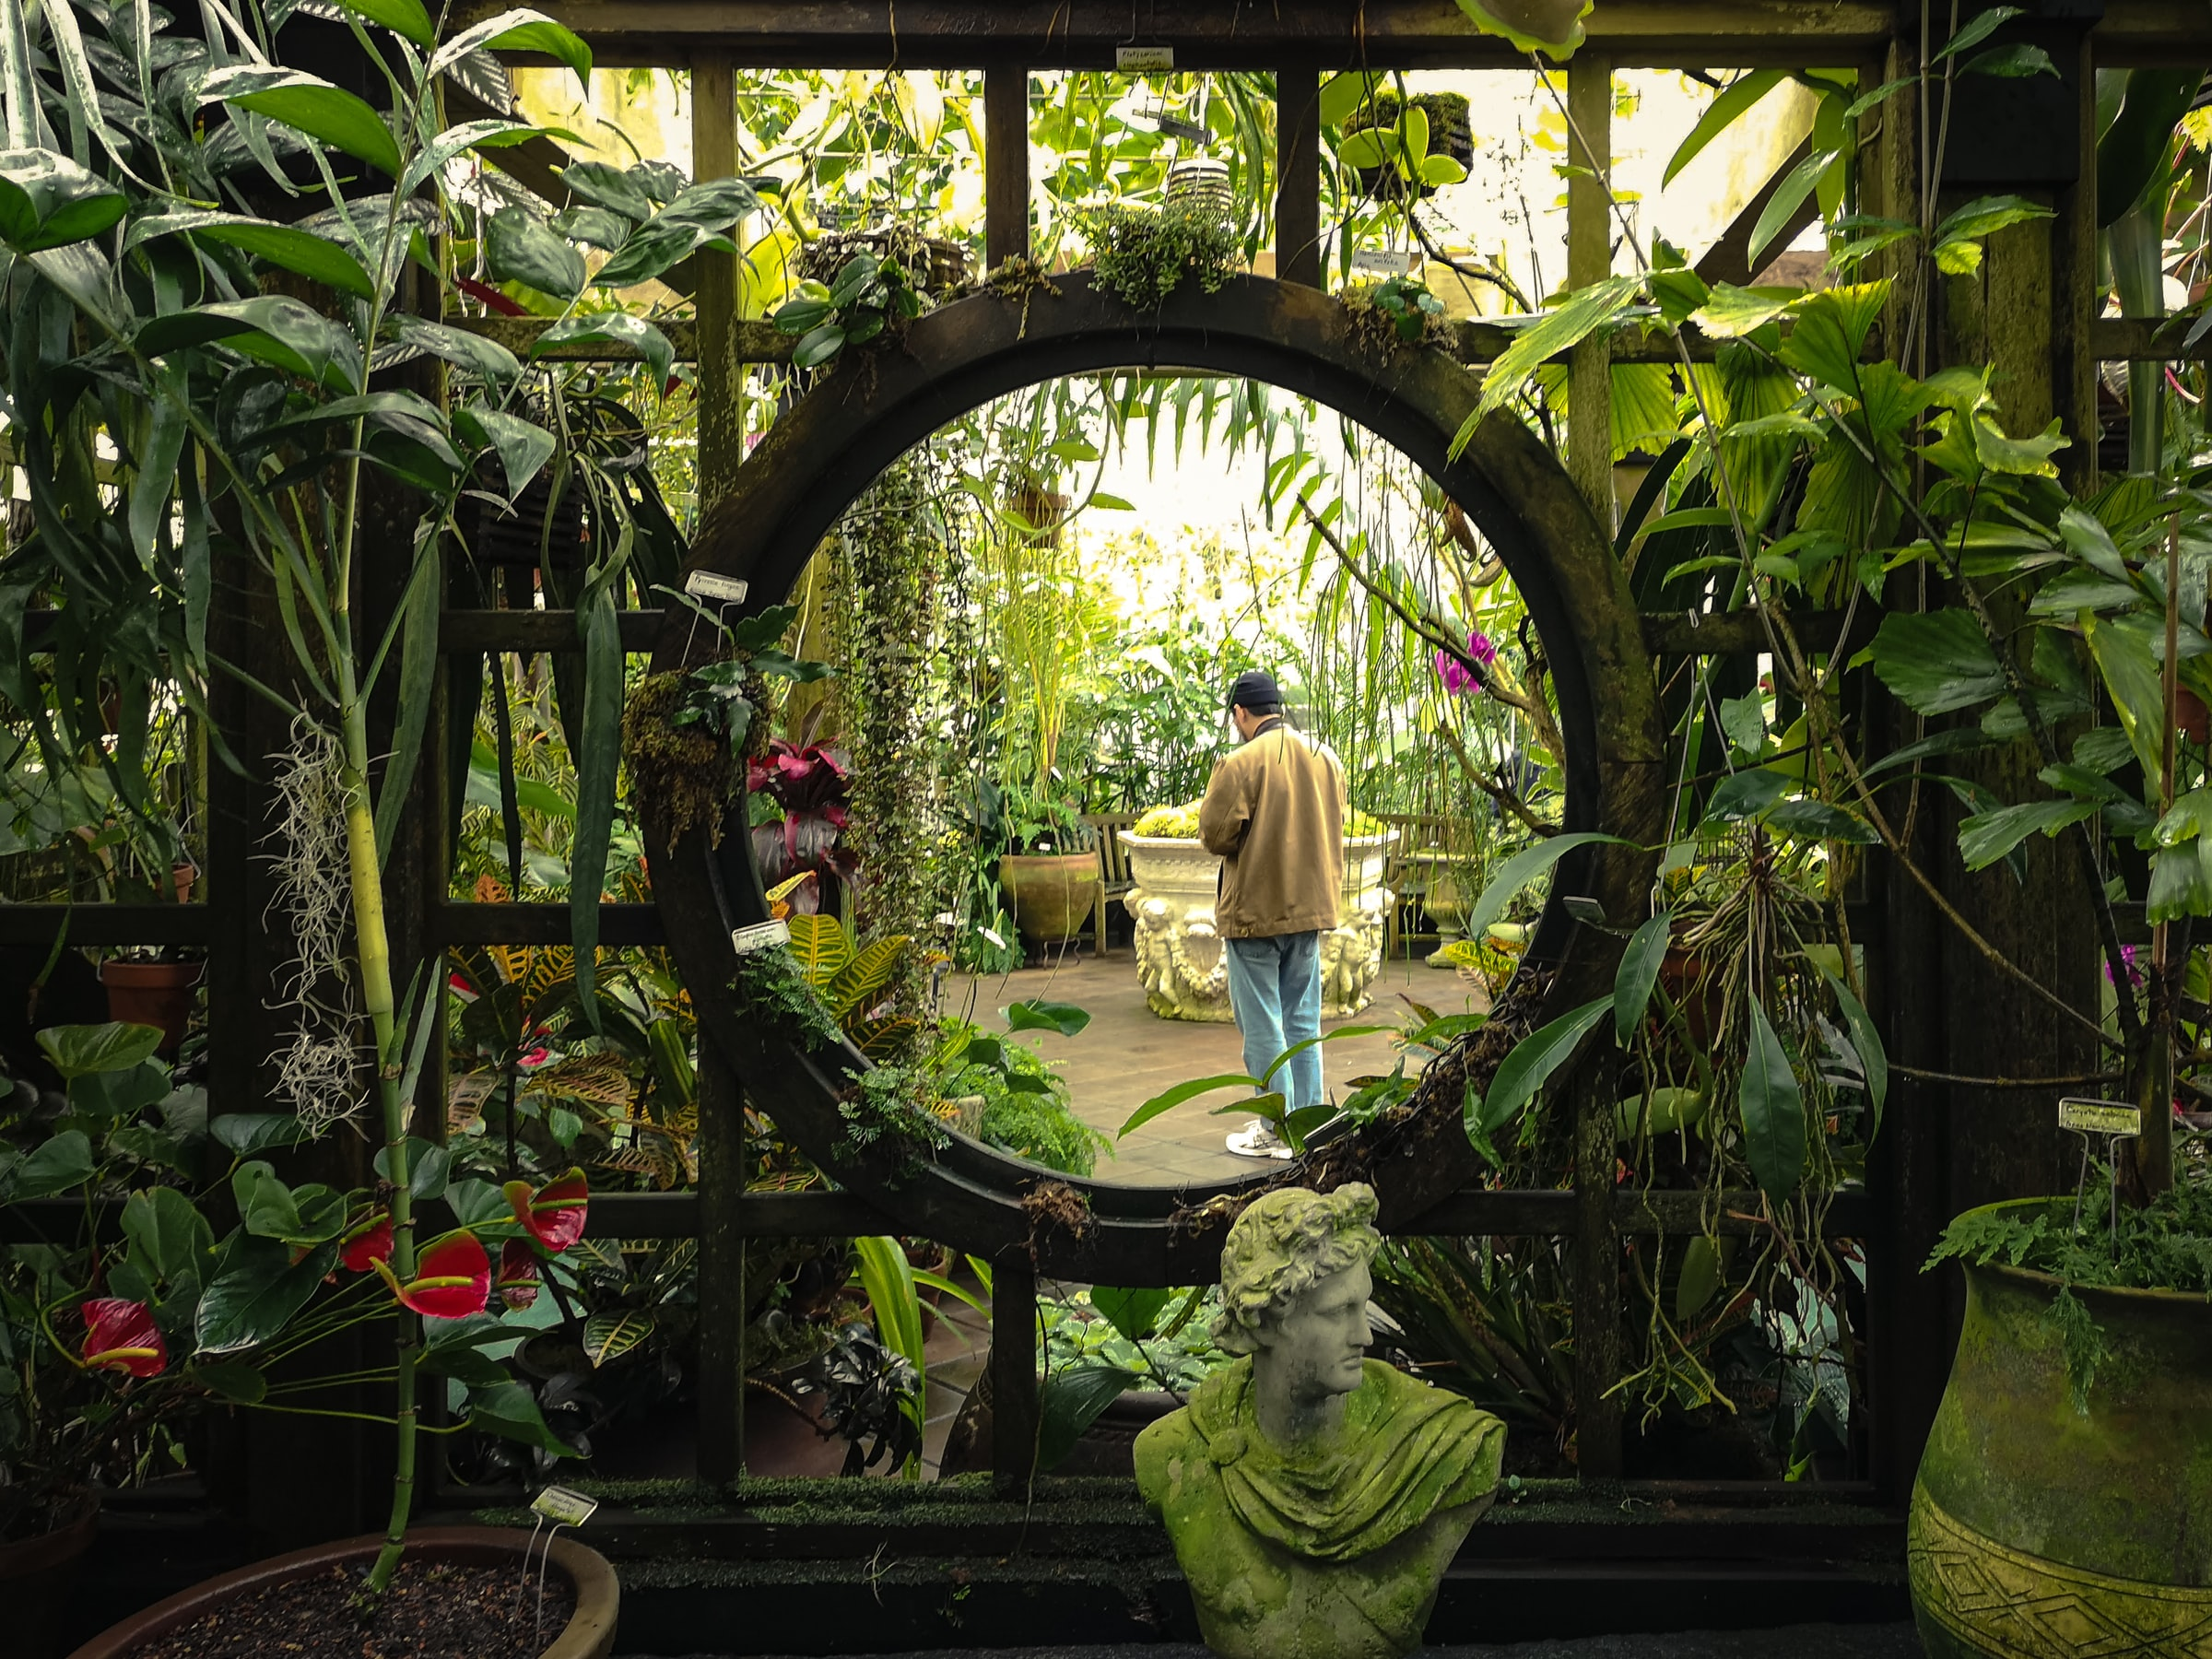 Conservatory of Flowers, one of the things to see inside Golden Gate Park